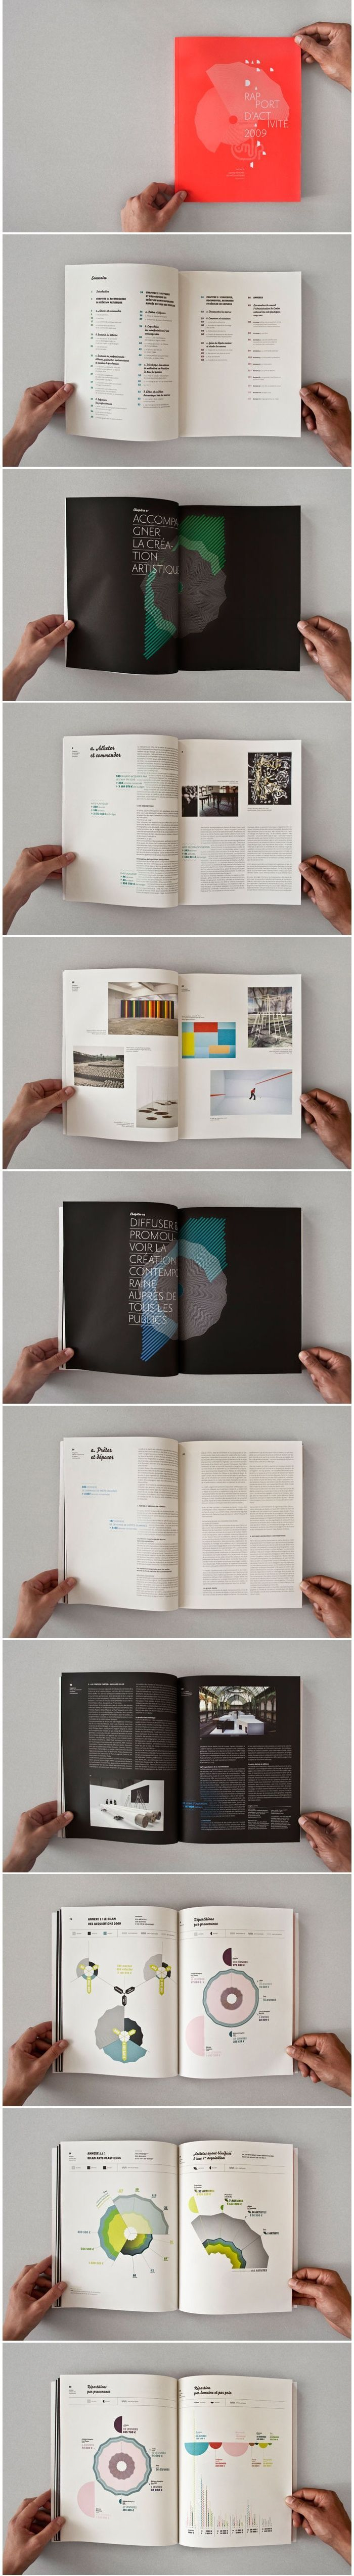 Caroline Fabes, design of the 2009 annual report for the National Art Center